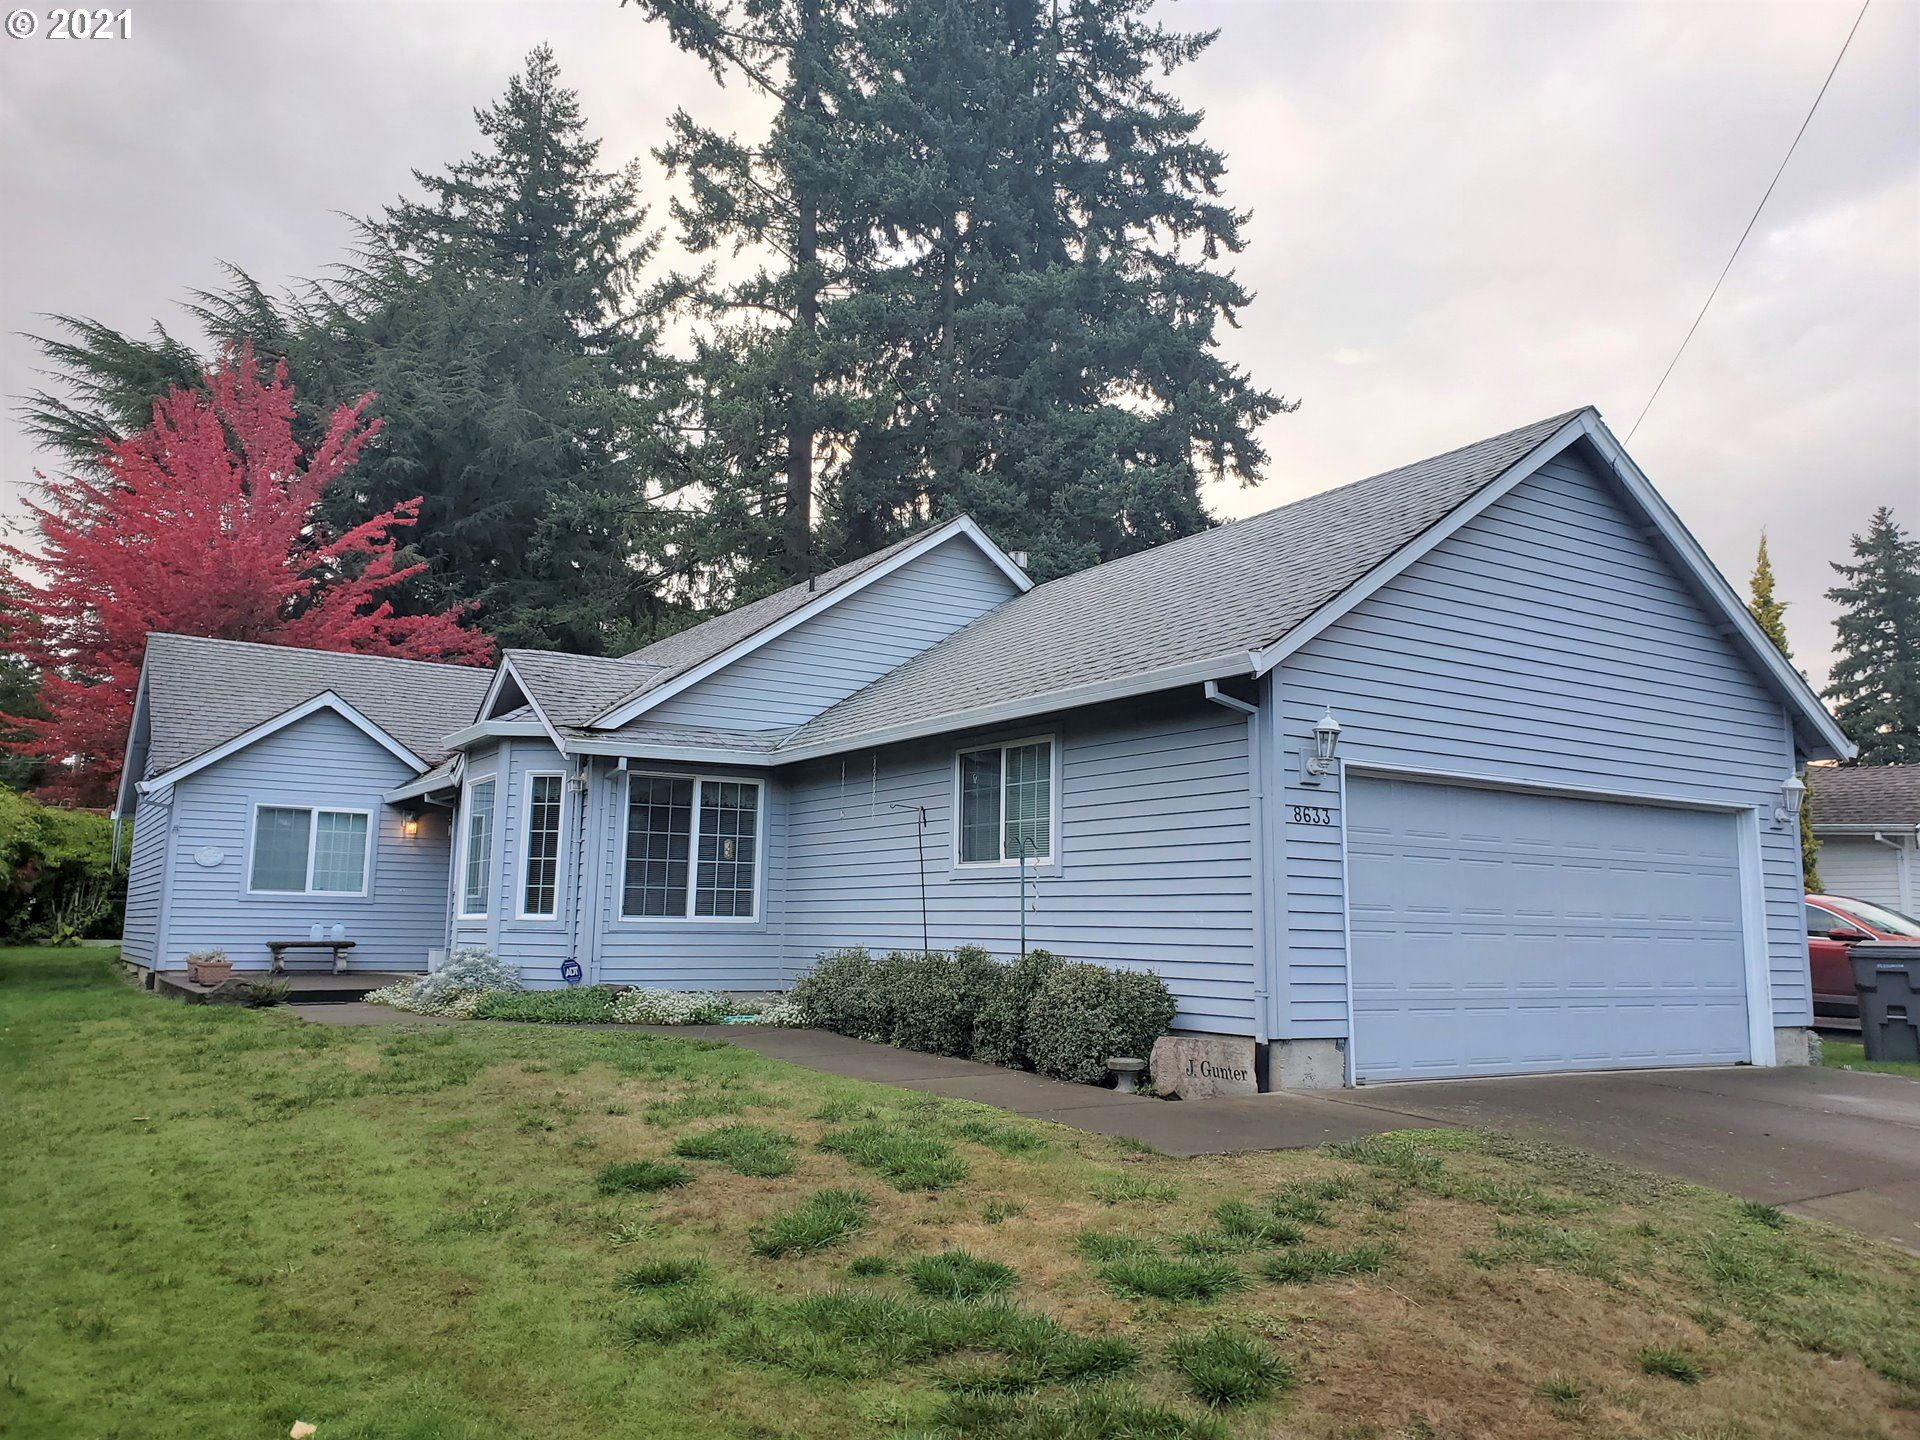 8633 SW 41ST AVE, Portland, OR 97219 - MLS#: 21625276